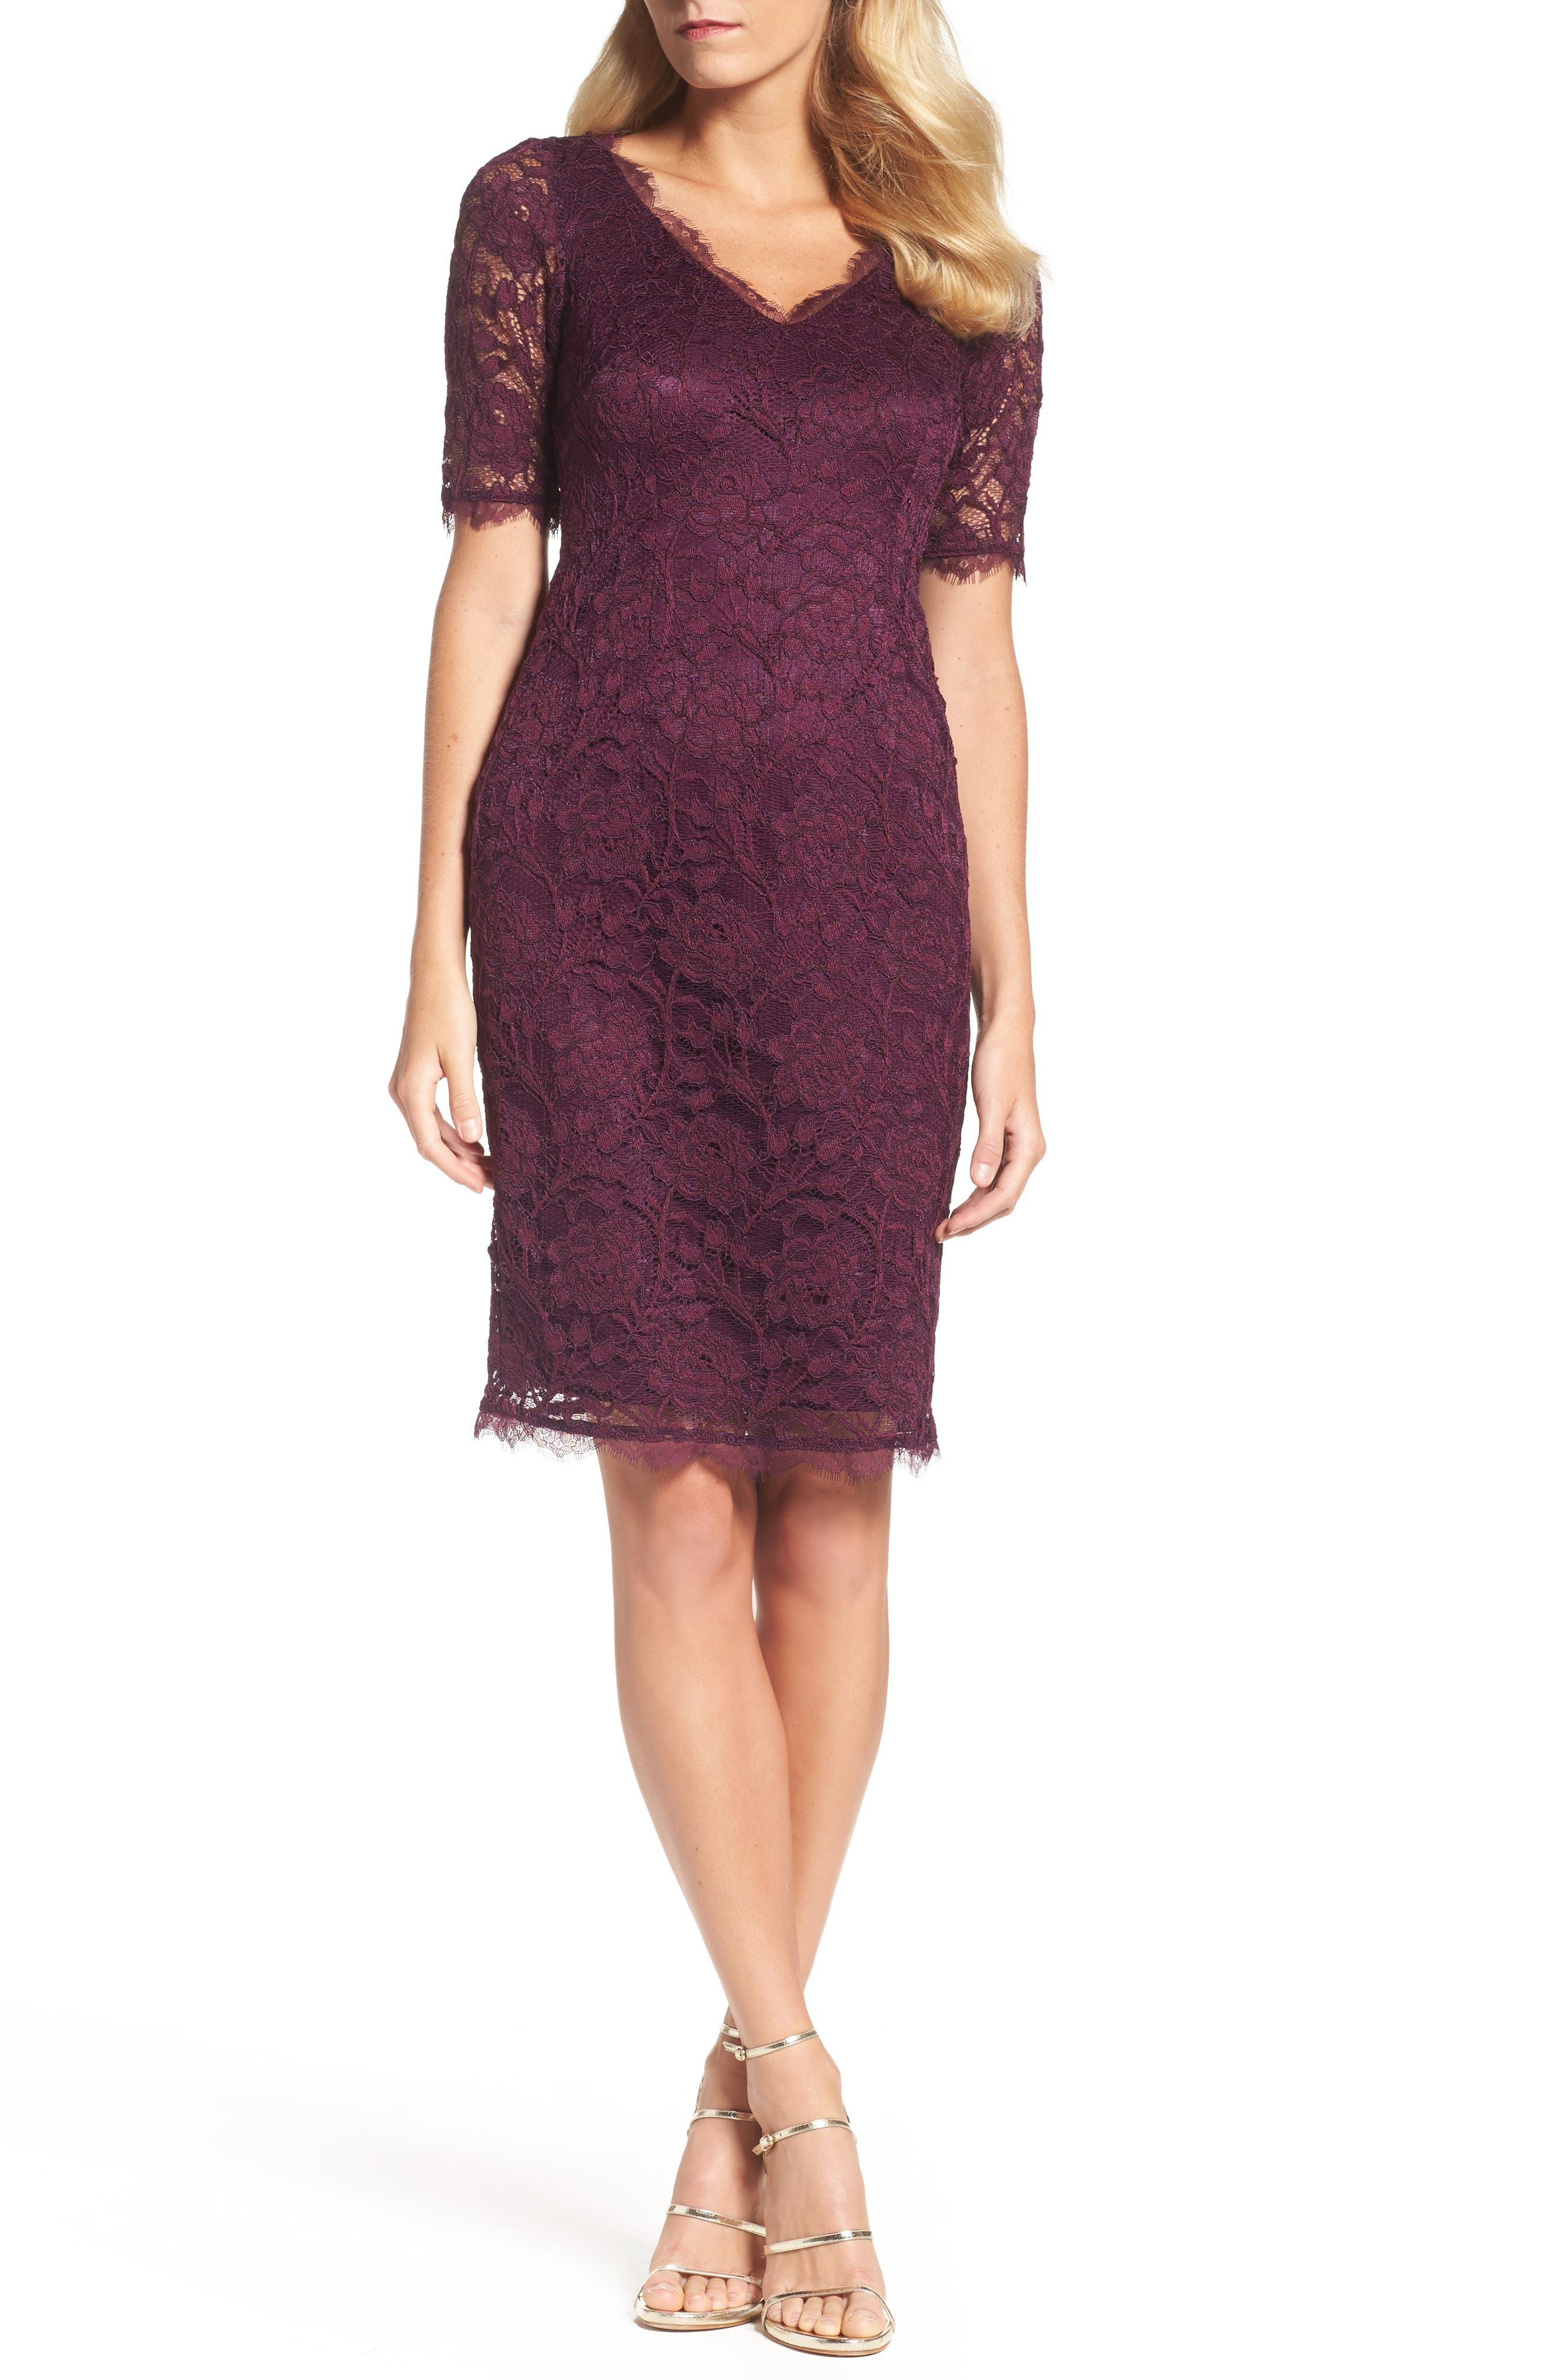 Adrianna Papell Rose Lace Sheath Dress